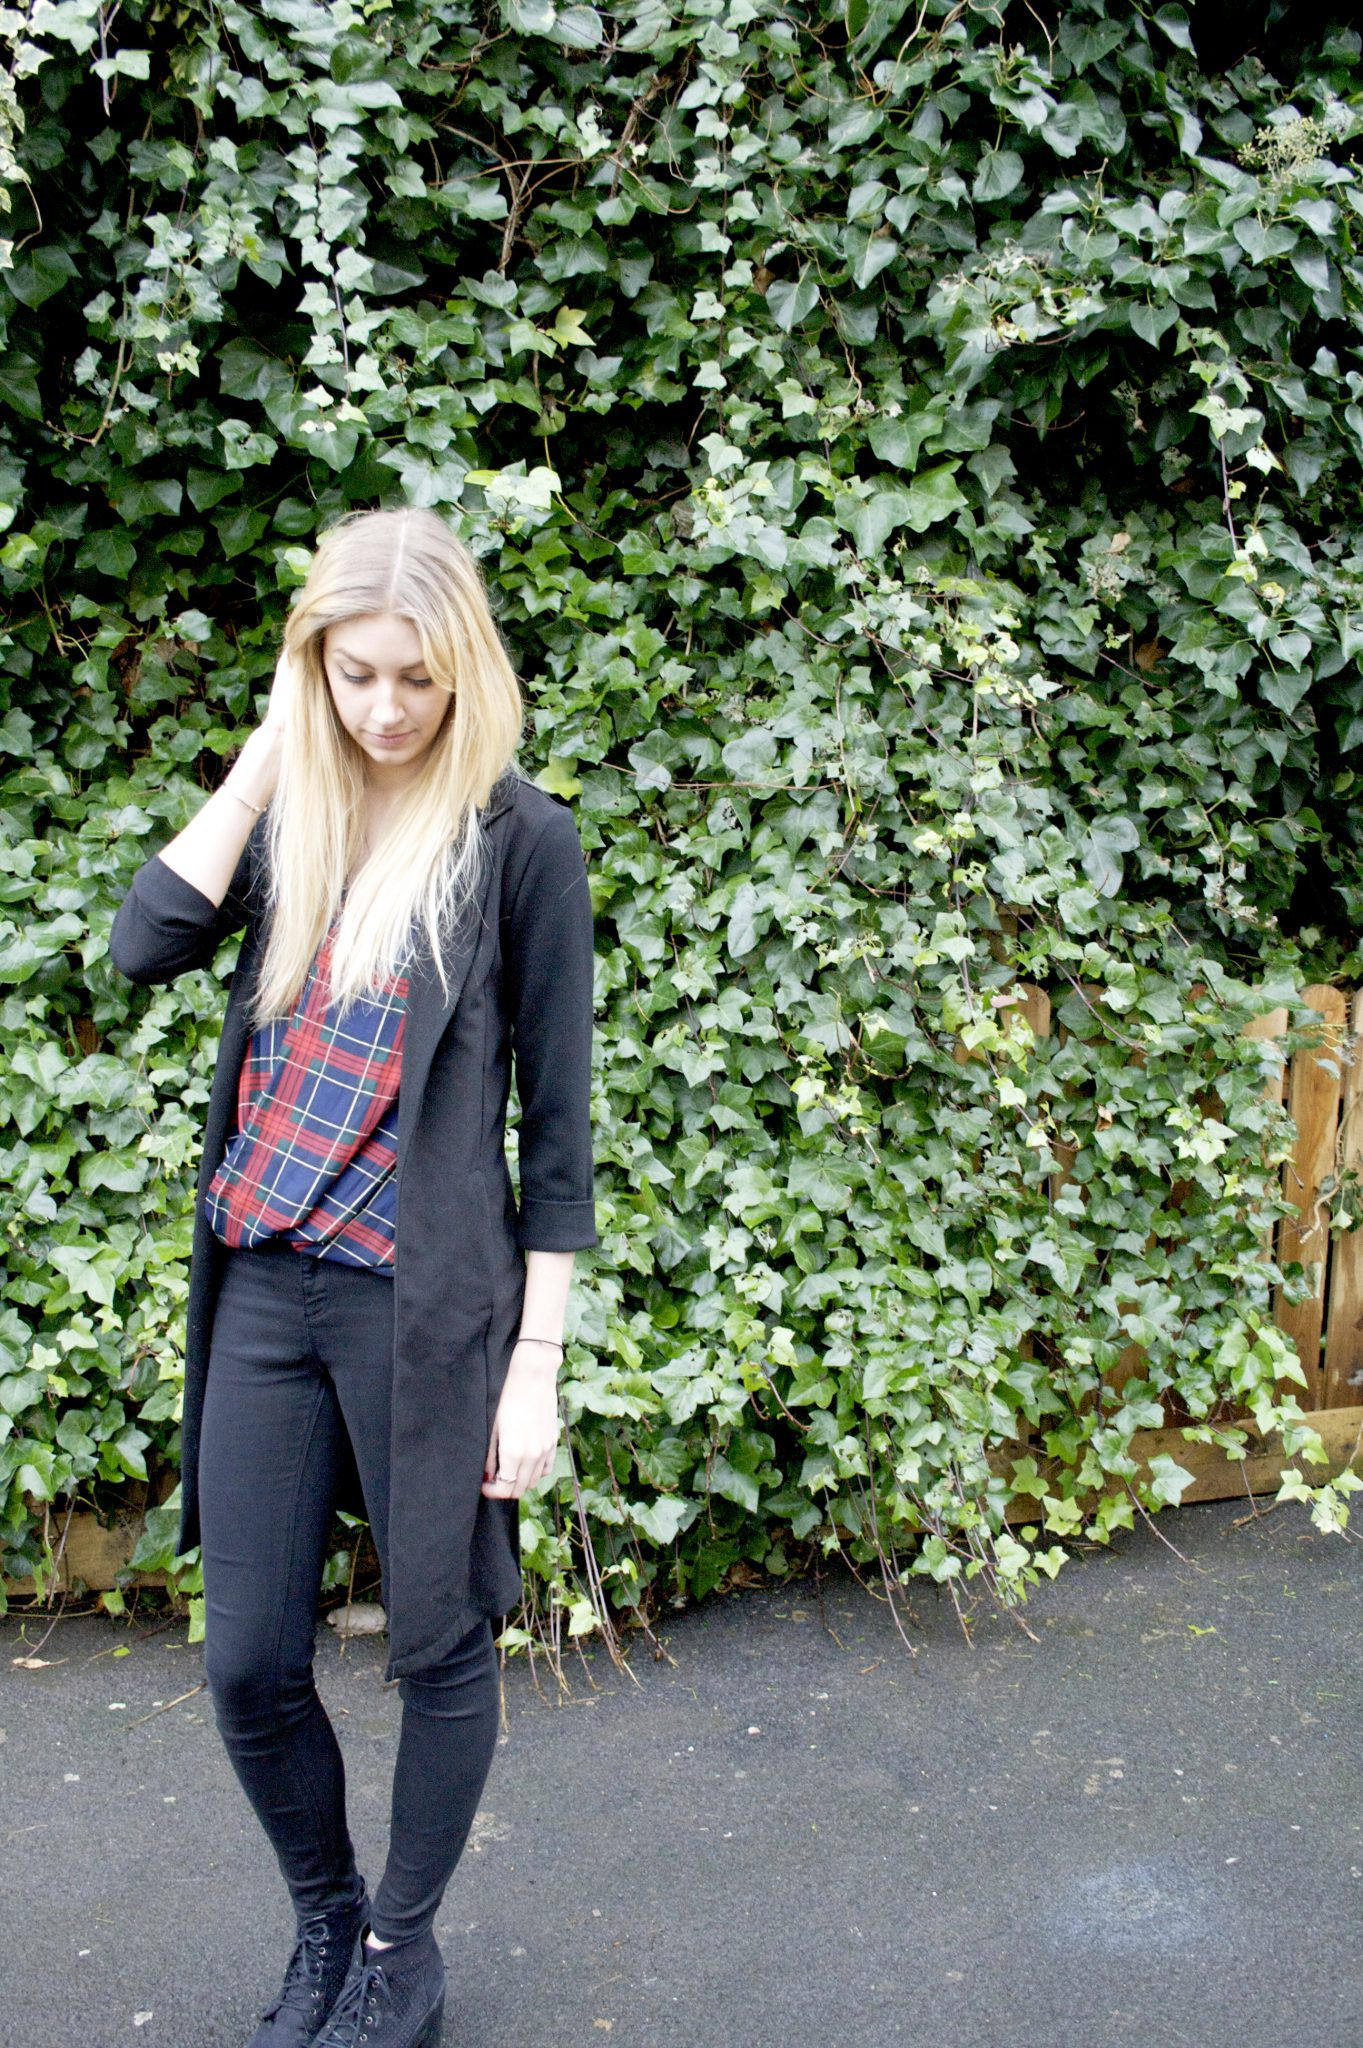 Manchester based fashion and lifestyle blogger. primark duster jacket, tiger mist tartan vest, river island jeans. Blonde blog.